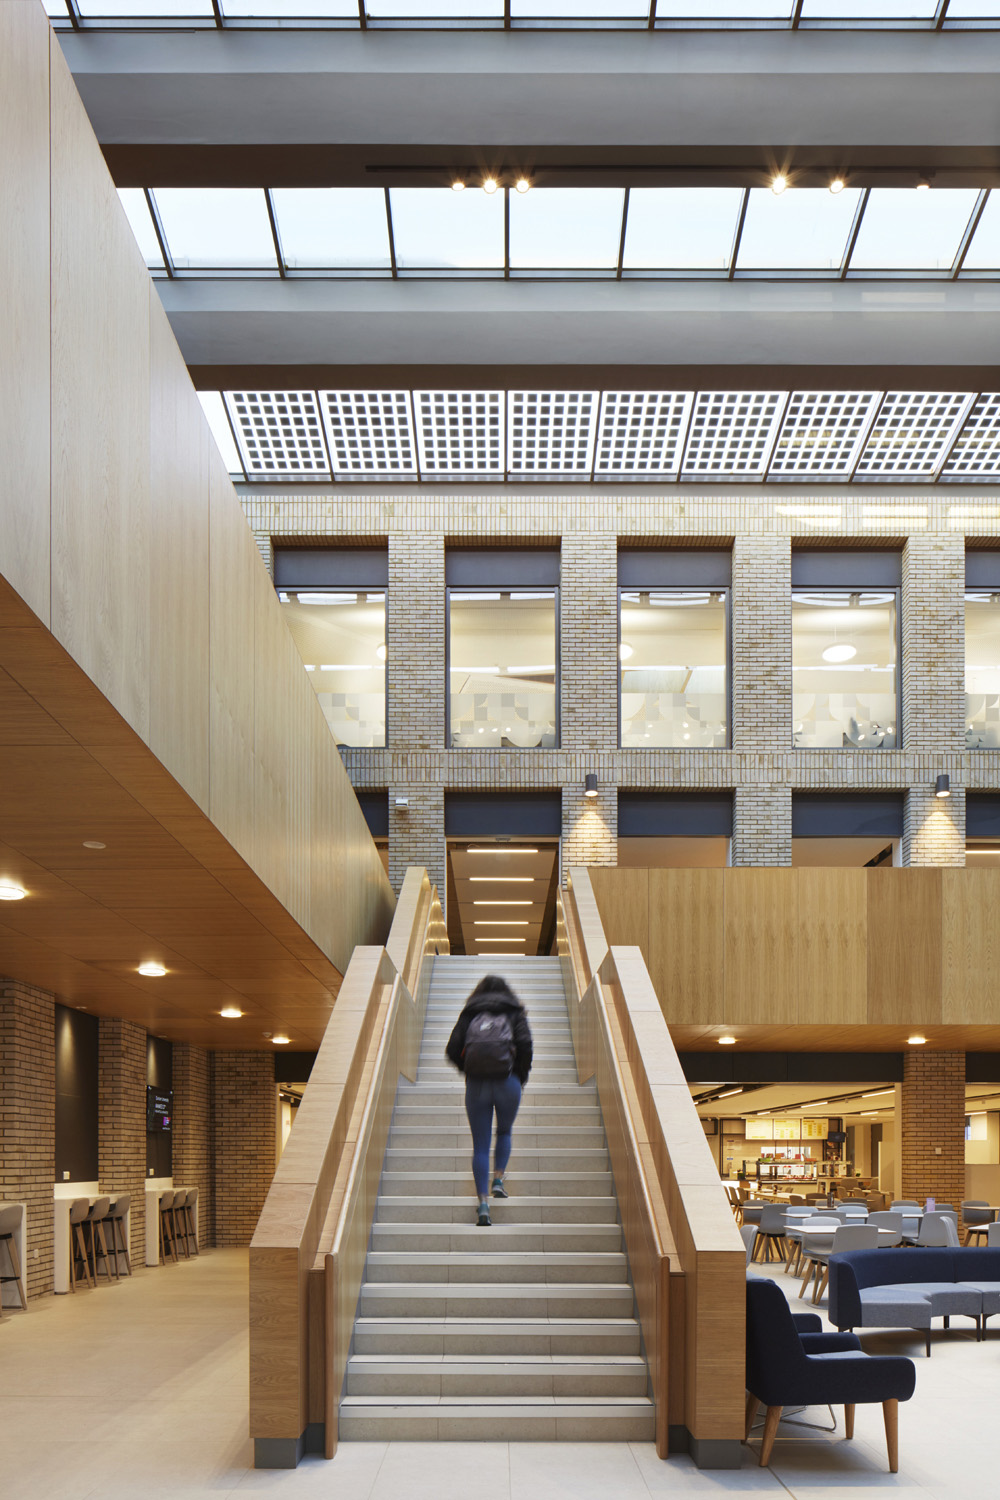 Stairs to first floor level - thin film photovoltaics visable within the roof glazing Jack Hobhouse